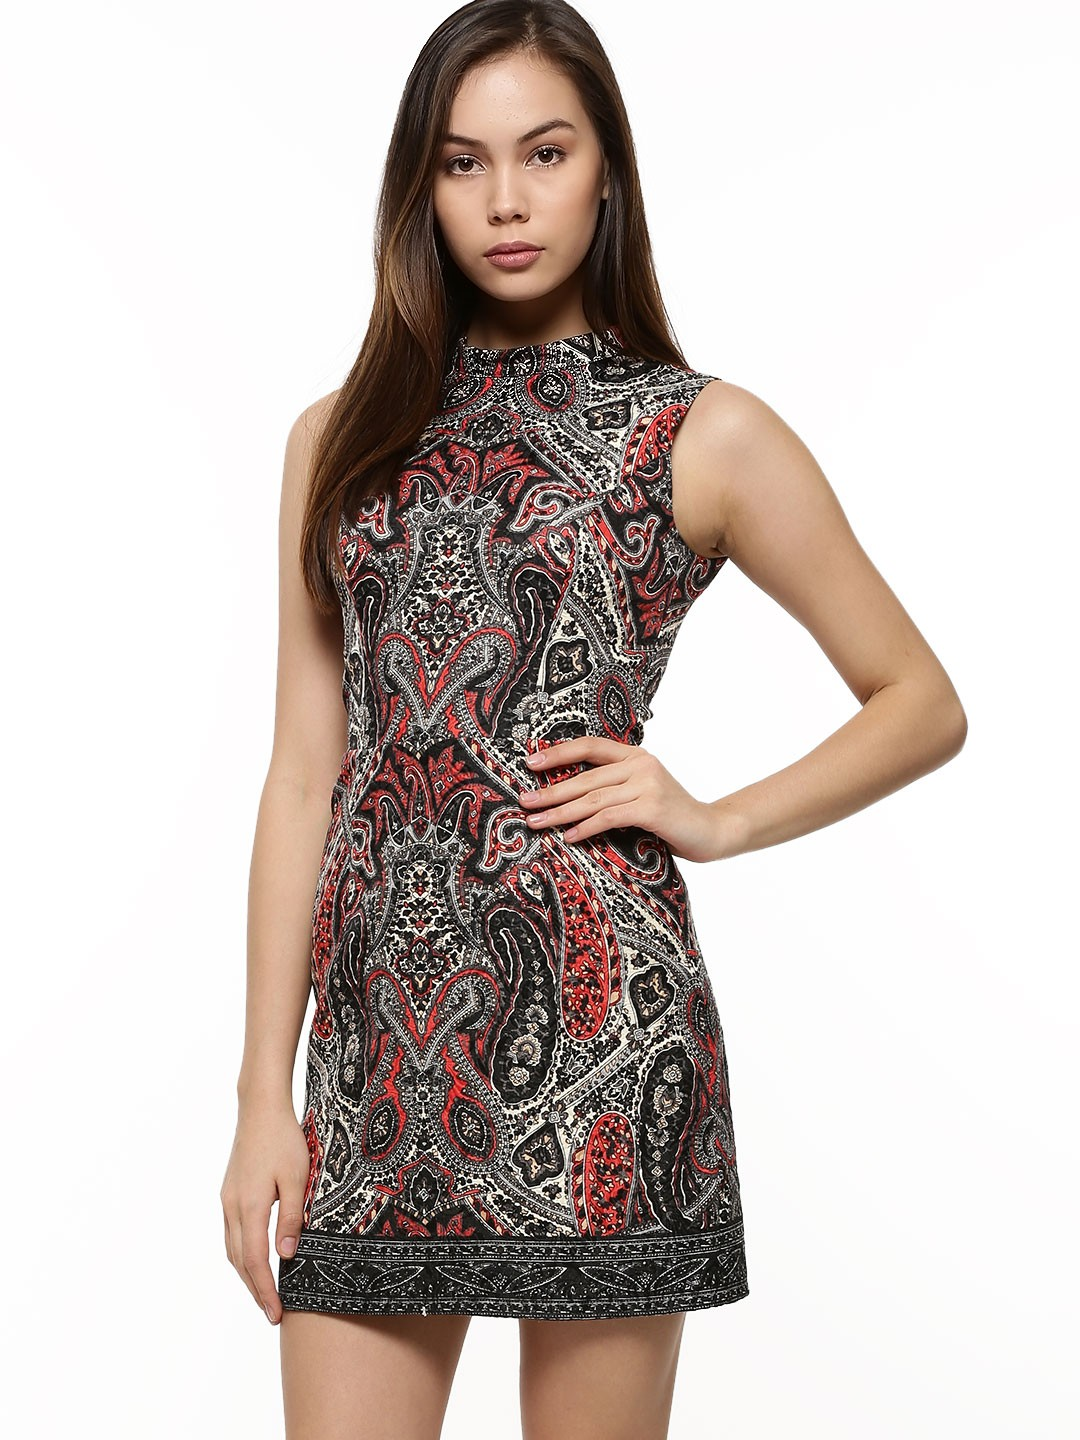 Paisley Print High Neck Dress For Women S Multi Tunic Dresses Online In India